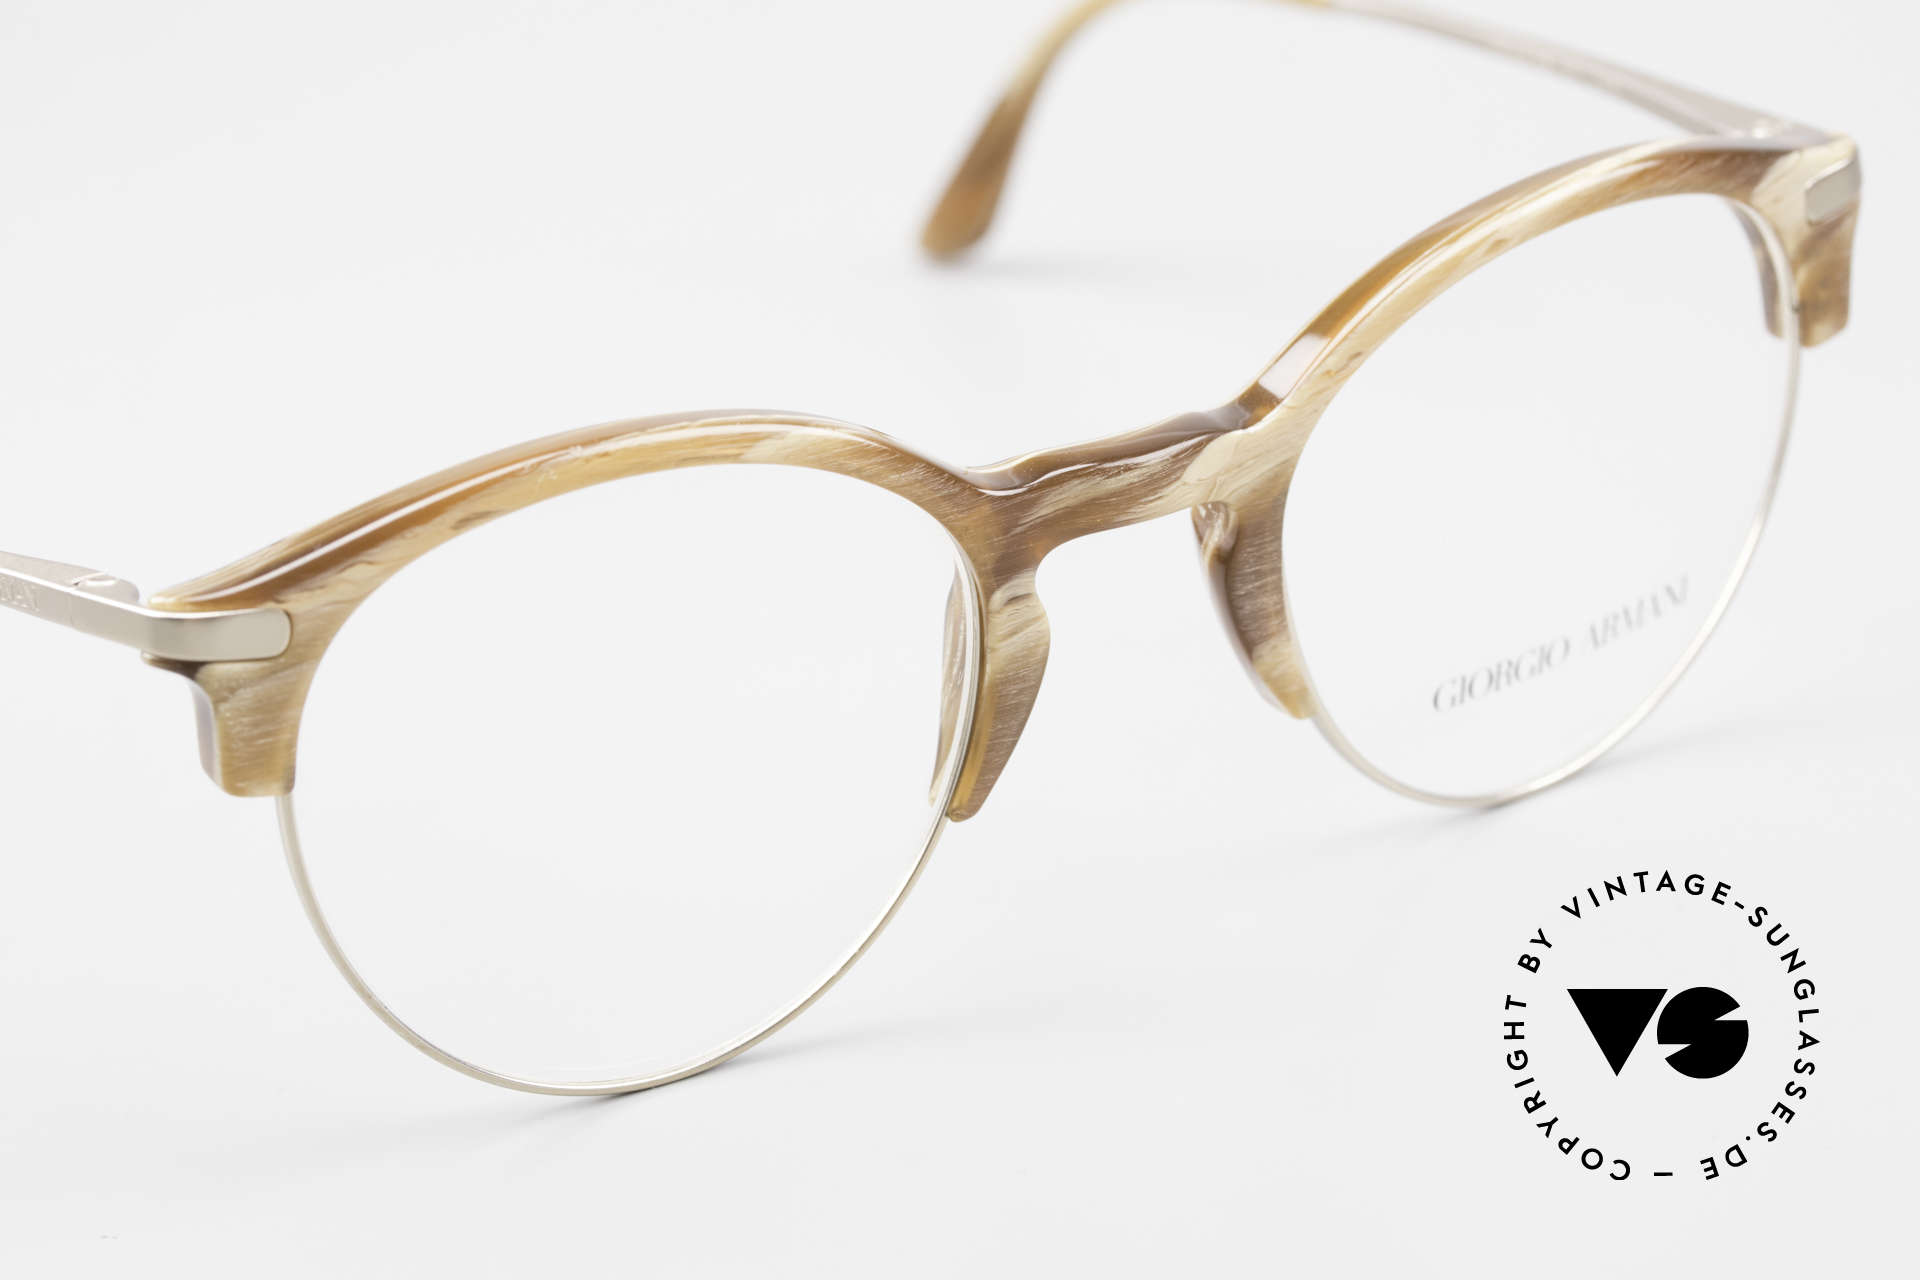 Giorgio Armani 7014 Panto Frame With Spring Hinges, unworn model in MEDIUM size: 46/21, 140mm temple, Made for Men and Women